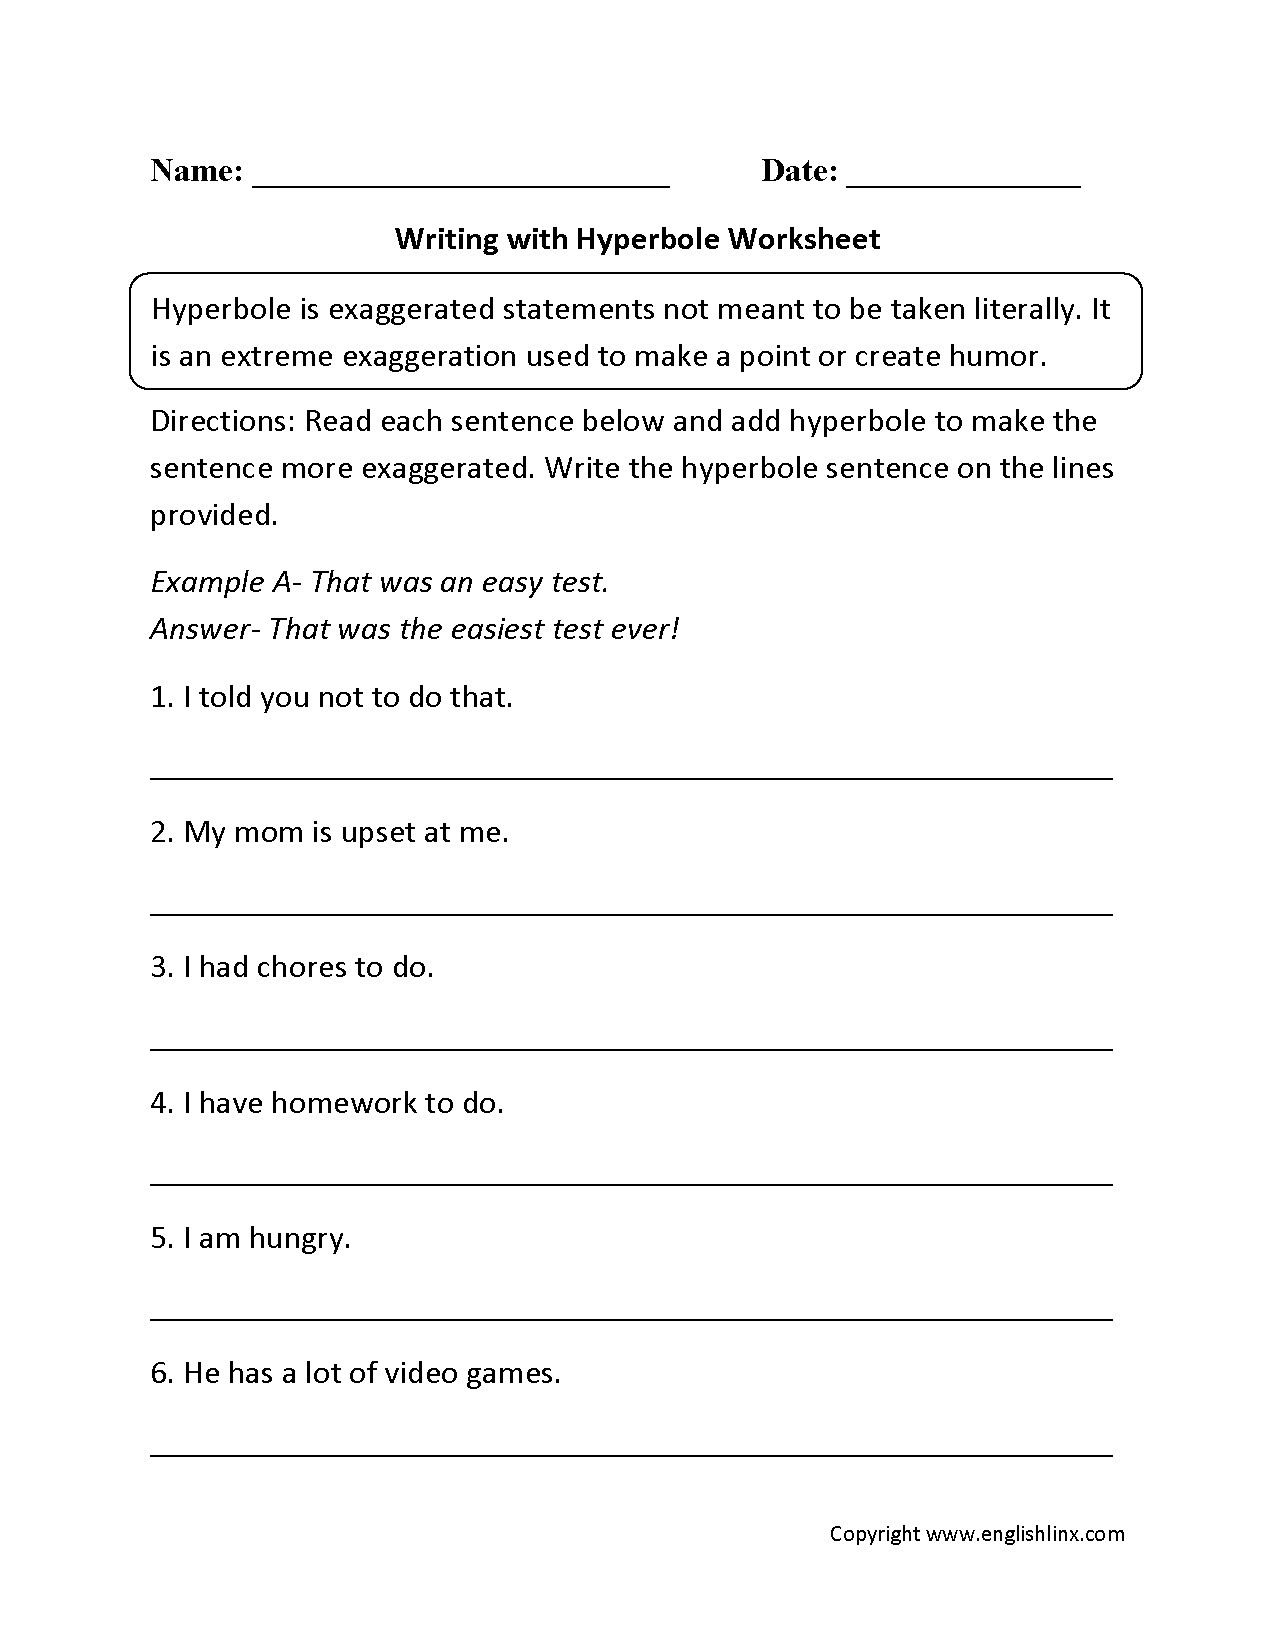 Free Printable Figurative Language Worksheets Hyperbole Figurative Language Worksheet